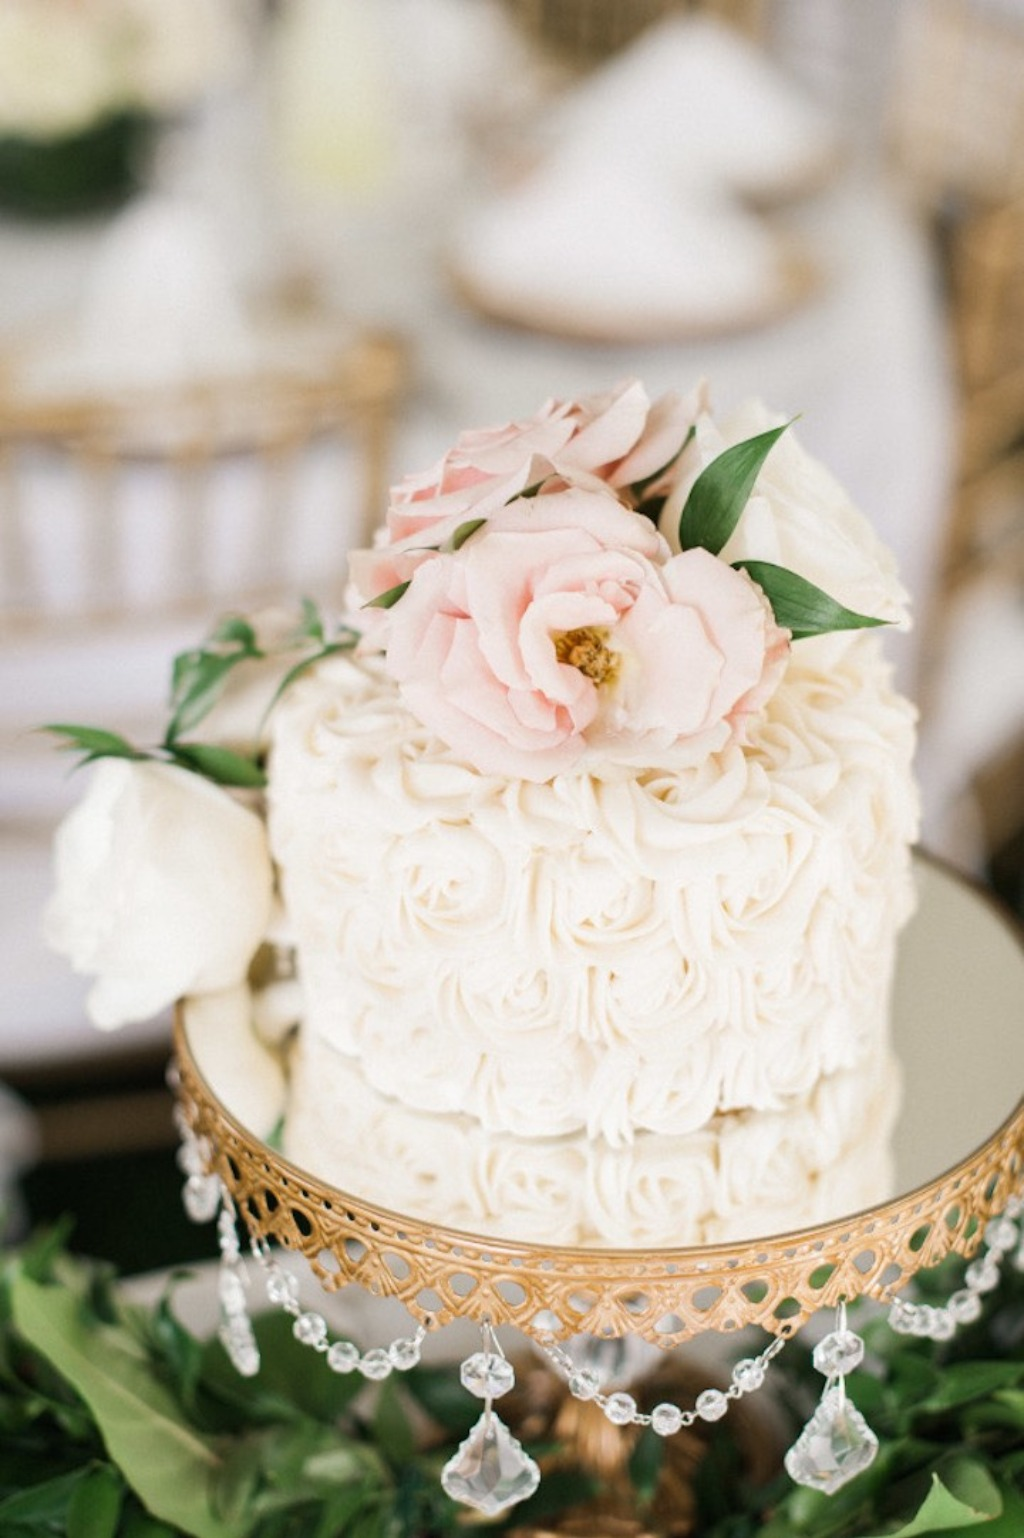 Garden Party Wedding with blush tones and rose gold accents, this wedding is filled with romantic details! Wedding Cake Stand with